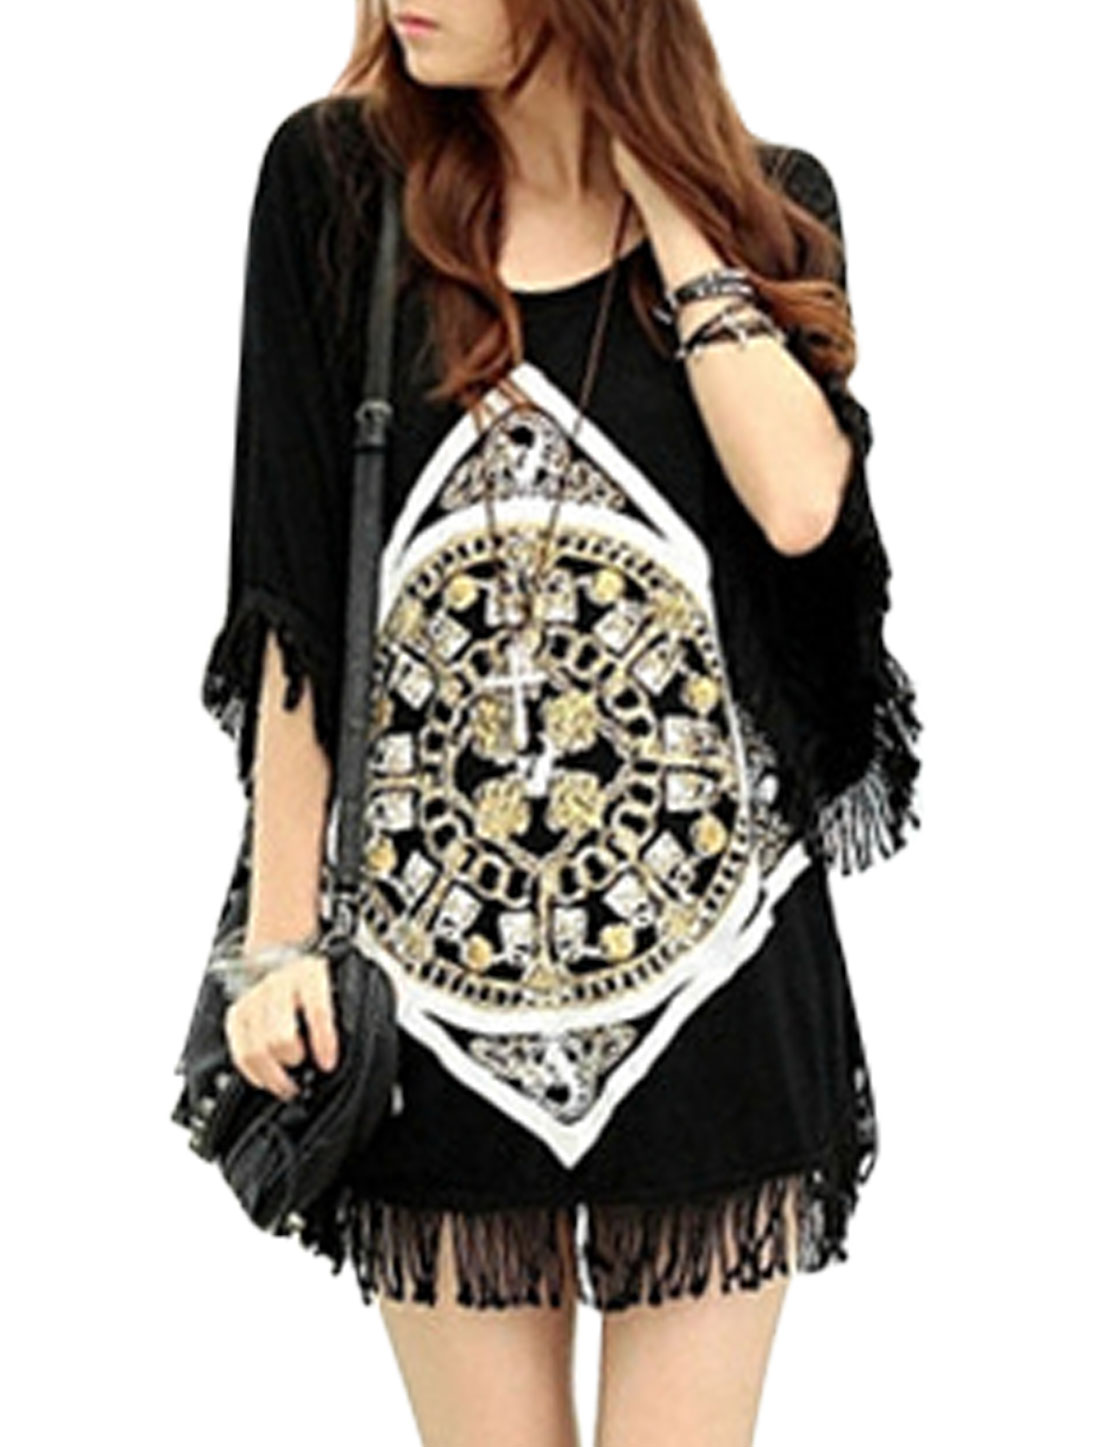 Women Batwing Sleeve Tassels Clock Prints Tunic Top Black XS